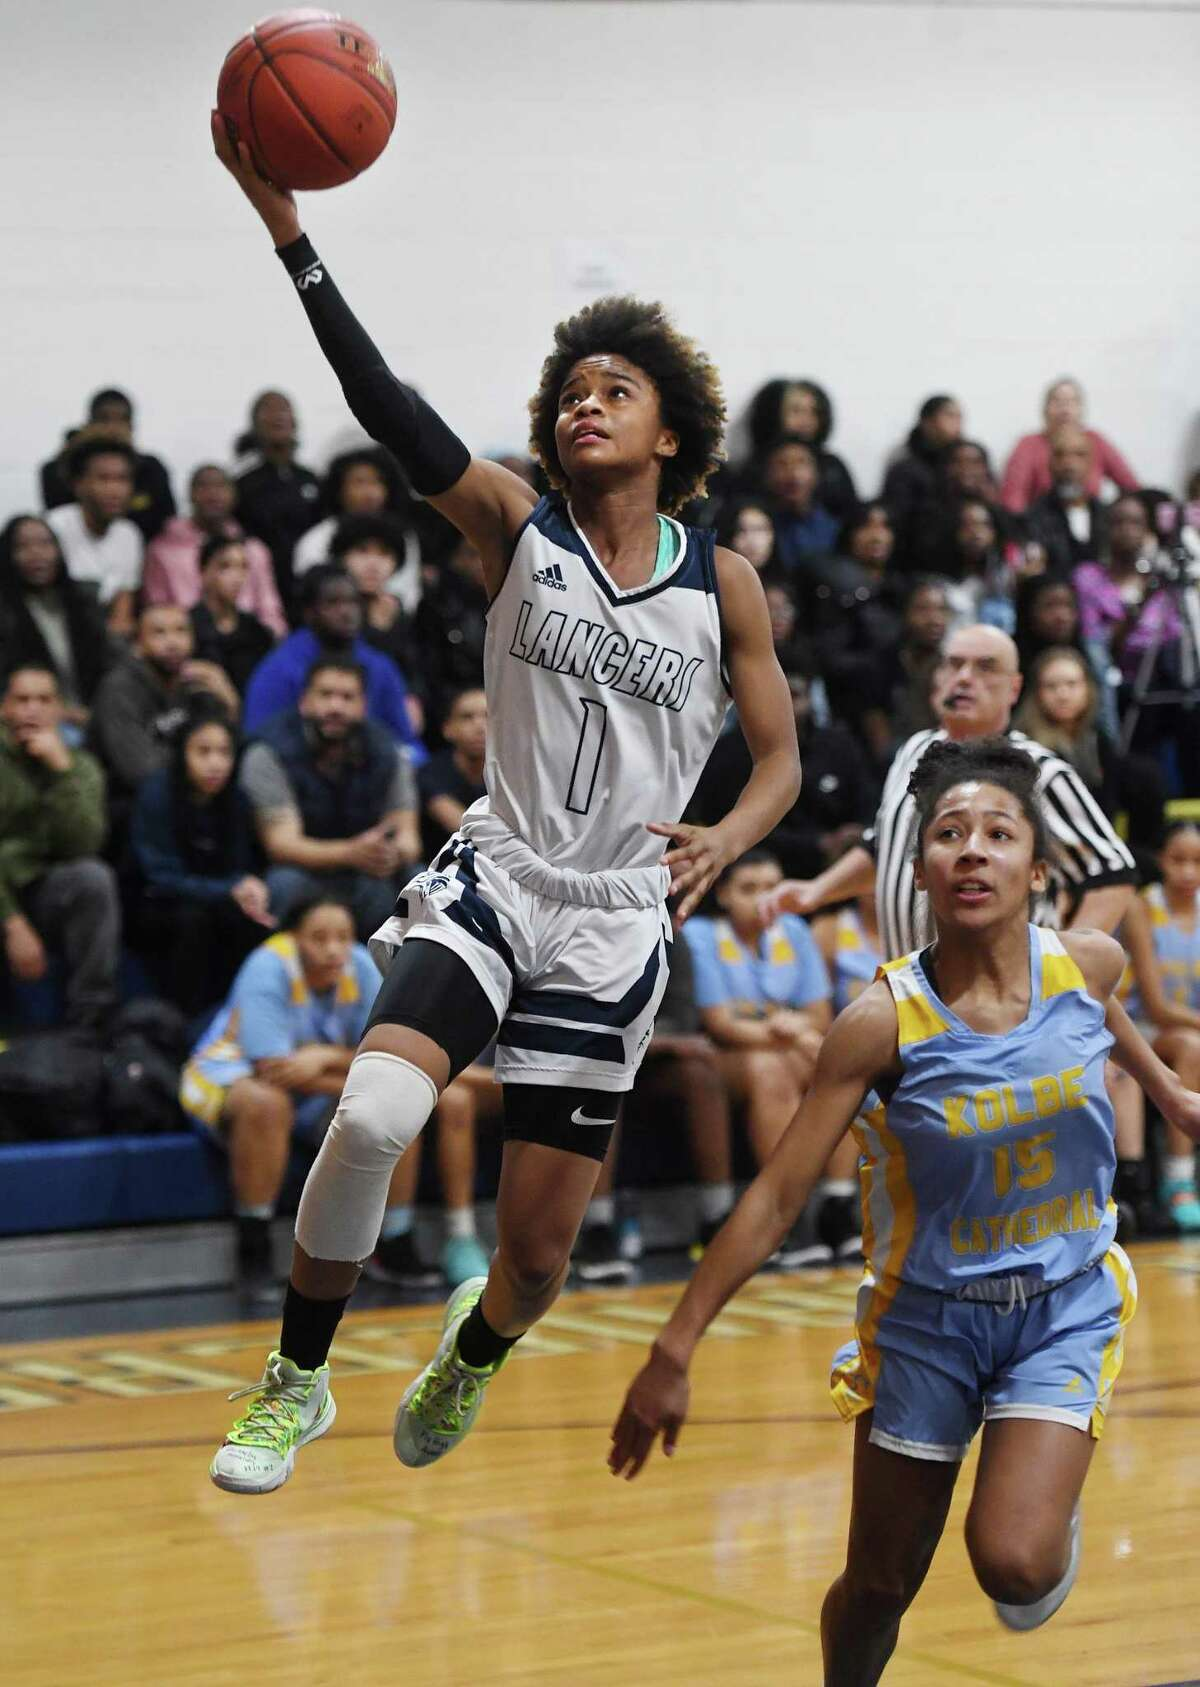 Notre Dame of Fairfield's Yamani McCollough soars to the basket ahead of Kolbe Cathedral defender Aniyah Pettway in the first half of the SWC girls basketball semifinals at Notre Dame High School in Fairfield, Conn. on Monday, February 24, 2020.